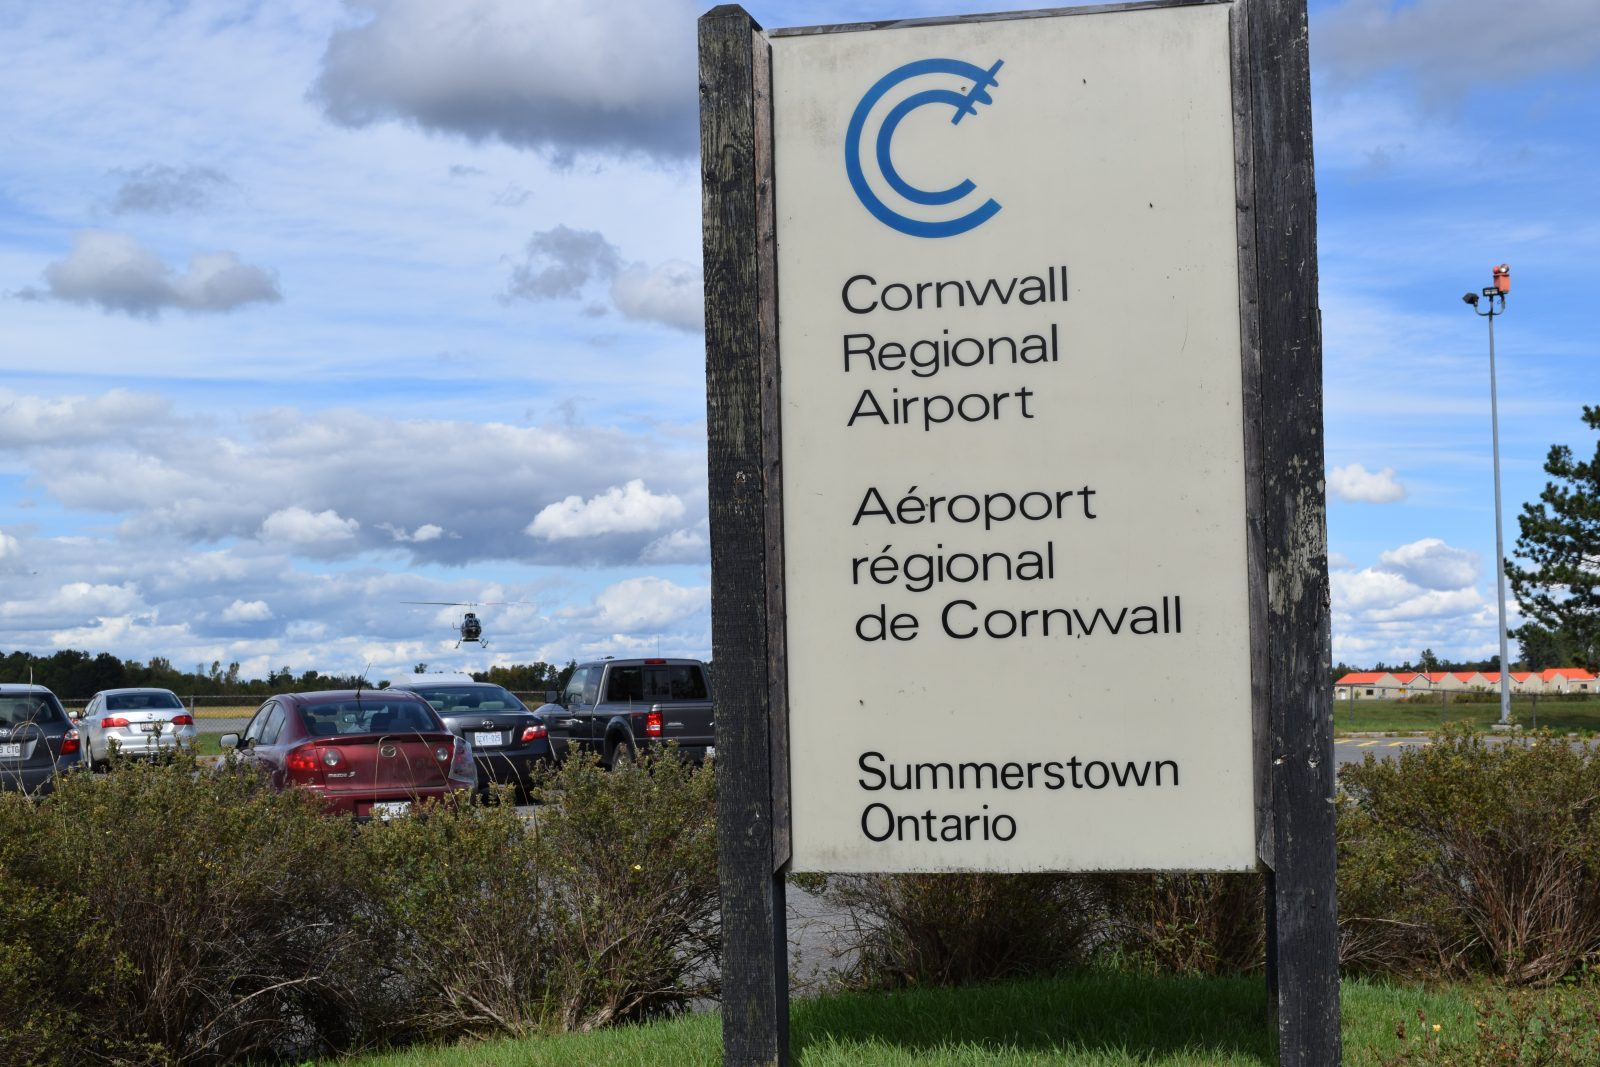 Cornwall administration recommends pulling out of airport agreement